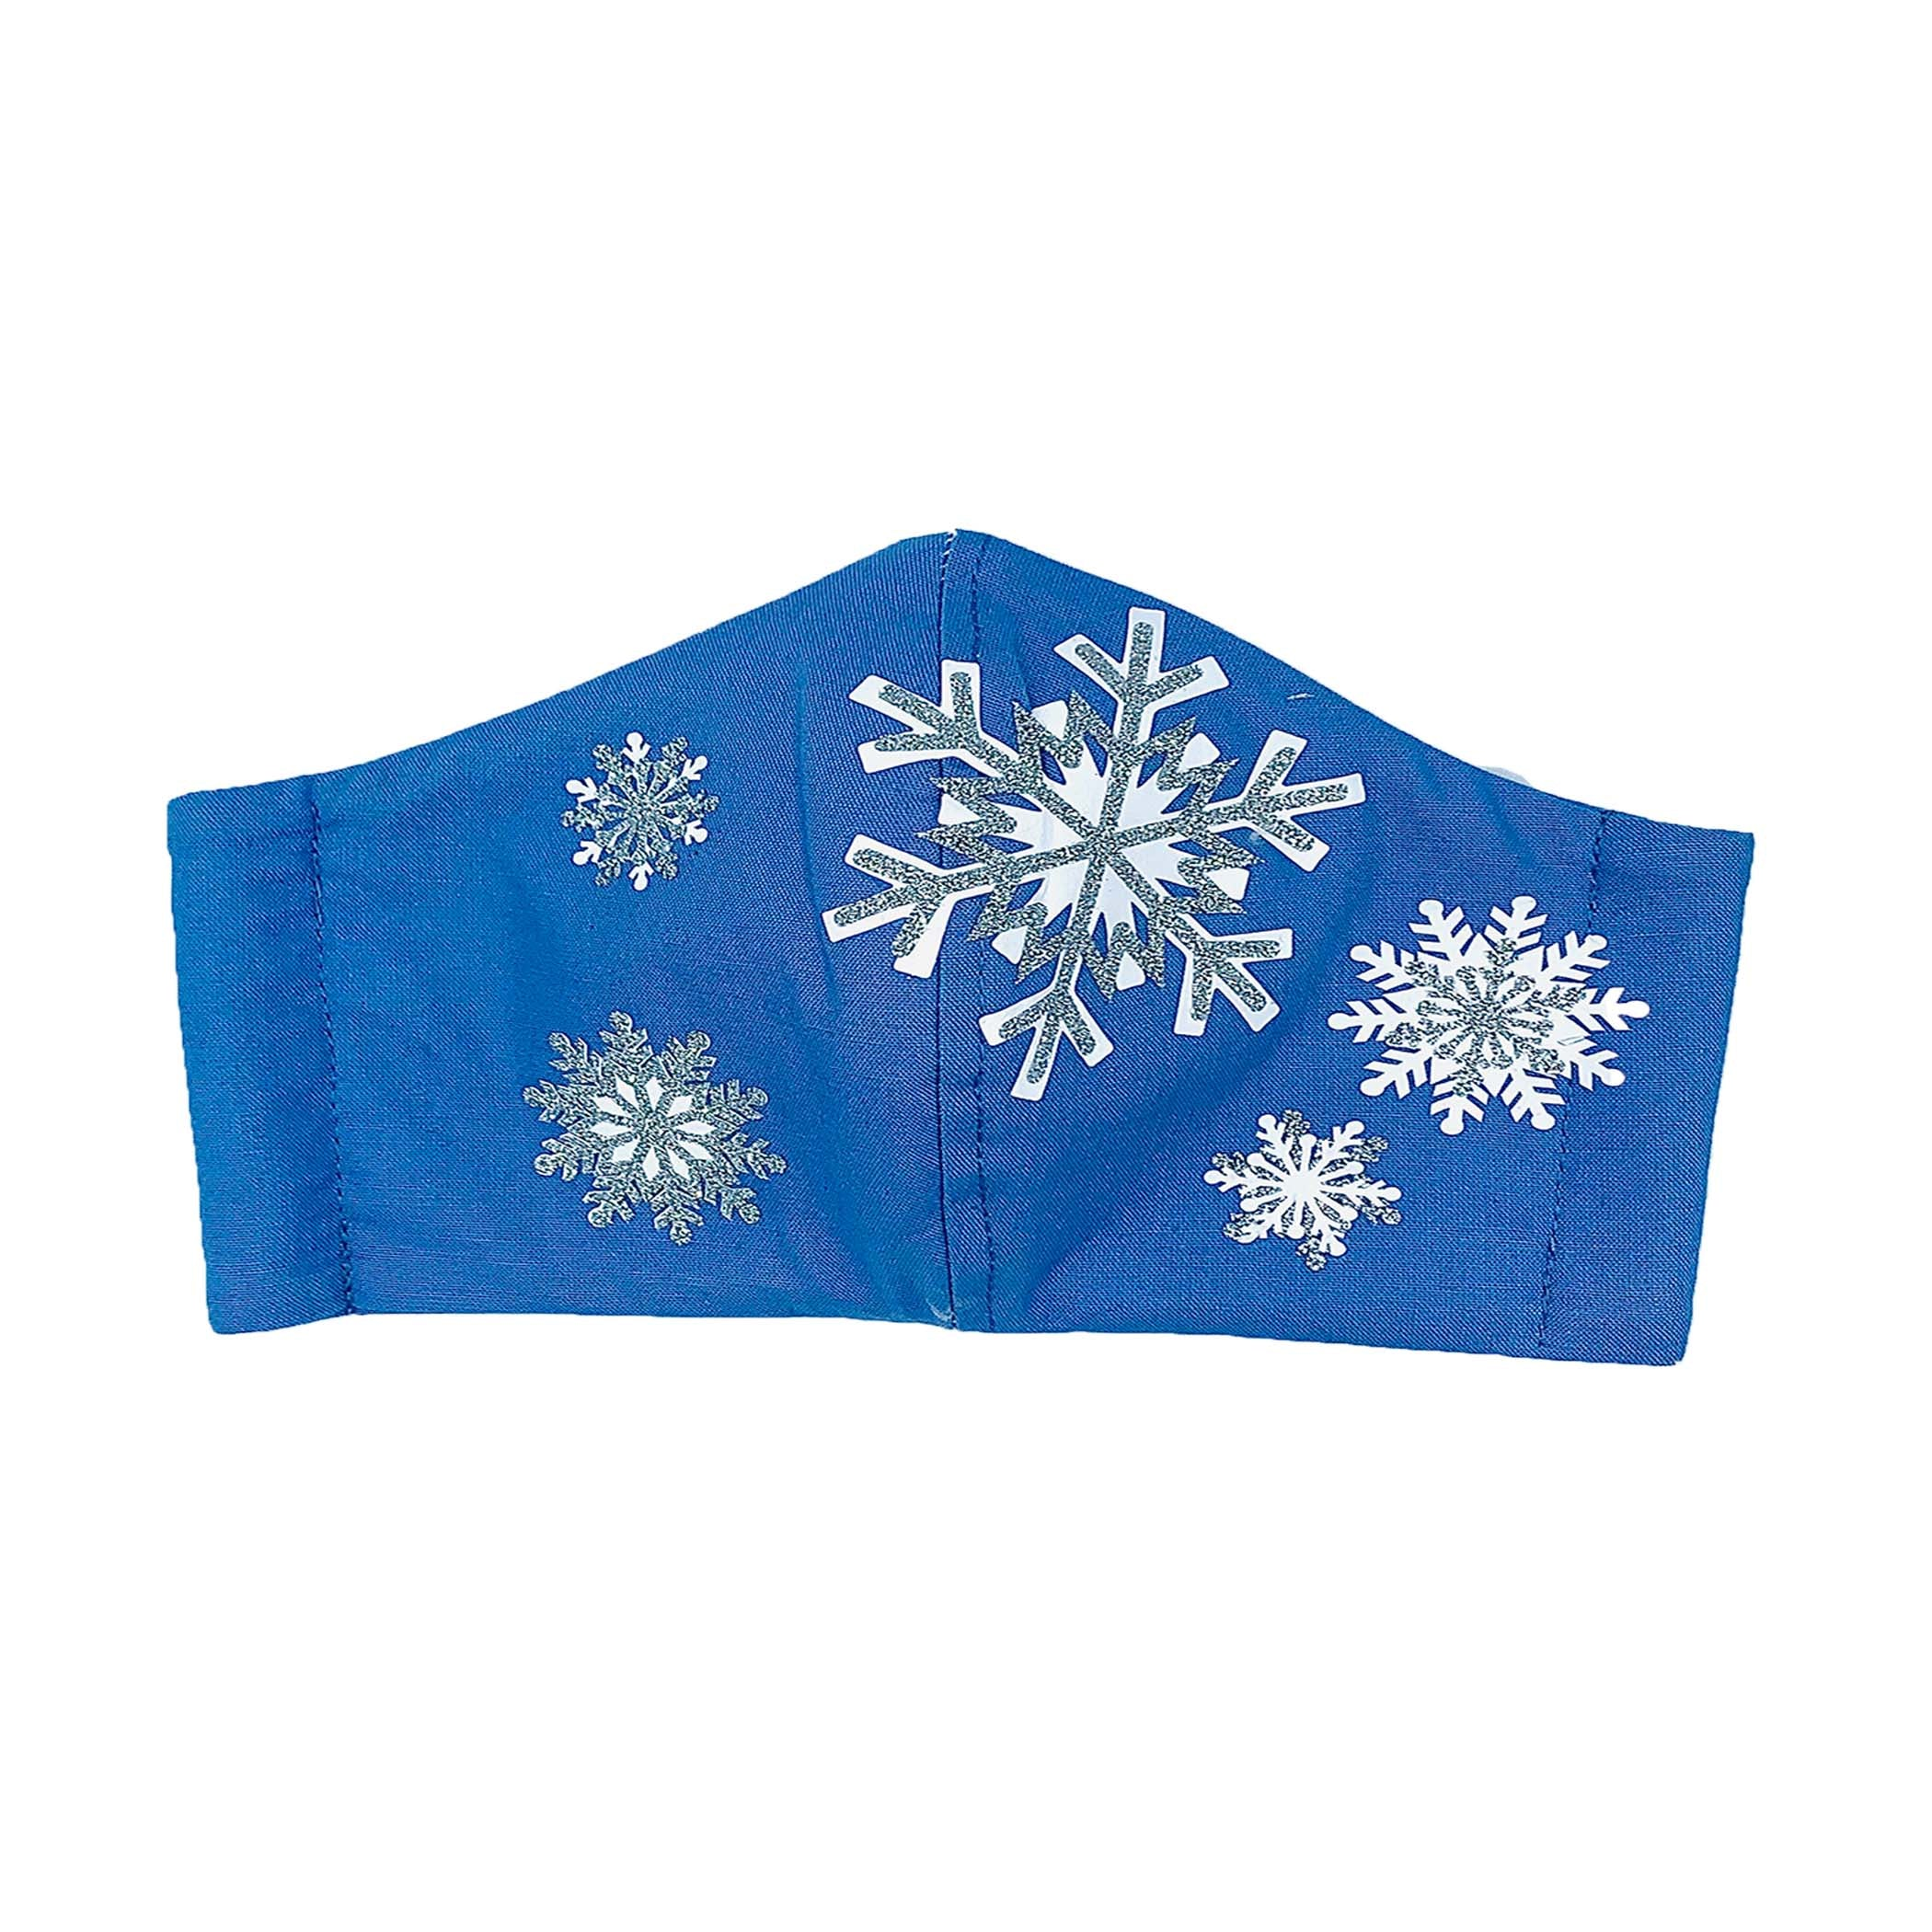 The Sparkling Glittery Snowflake (Adult and Kids)